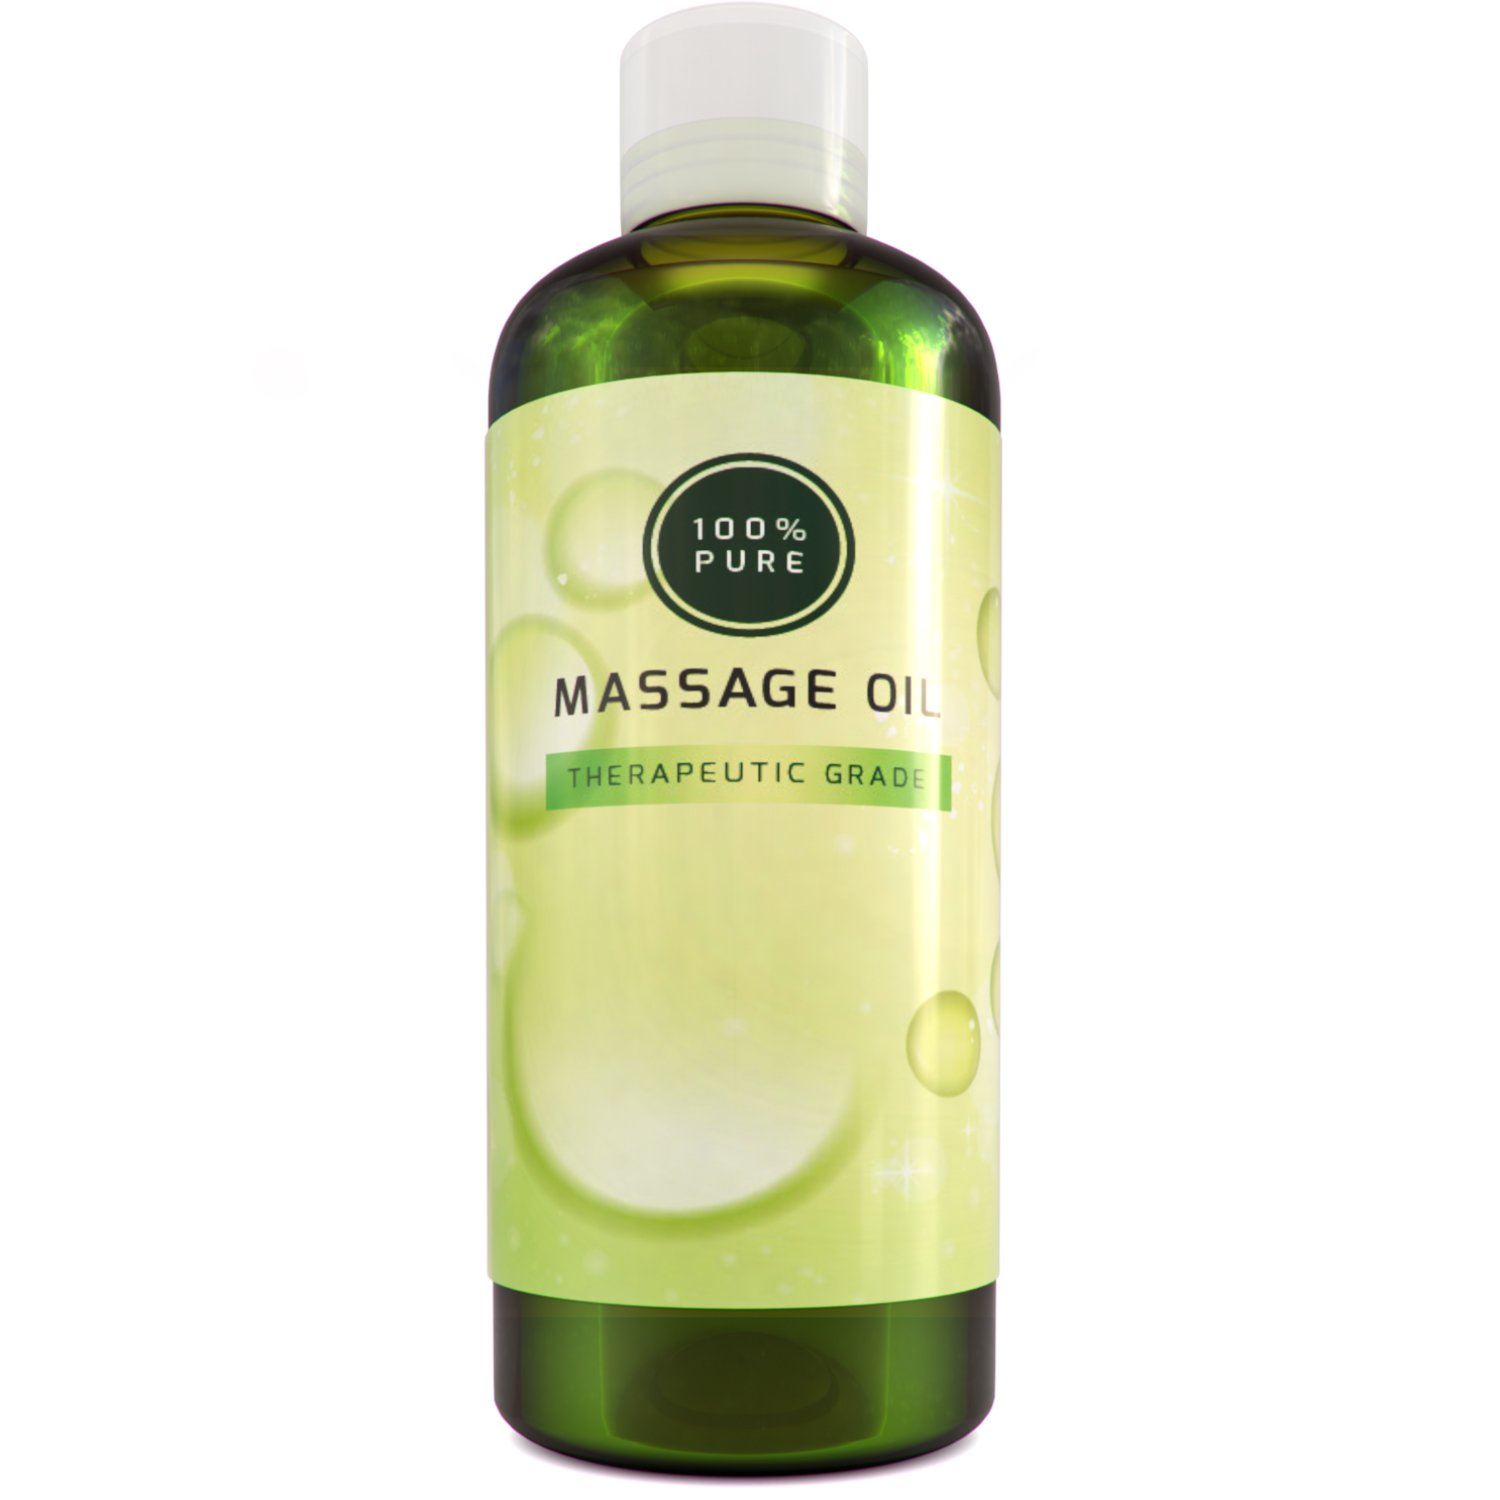 100% Pure Coconut Oil for Skin Spa Massage Unscented Carrier Oil and Sensual Massage Therapy Relaxing Formula for Dry Sensitive Skin Soothing Natural Cold Pressed Healing Body Oil for Men and Women